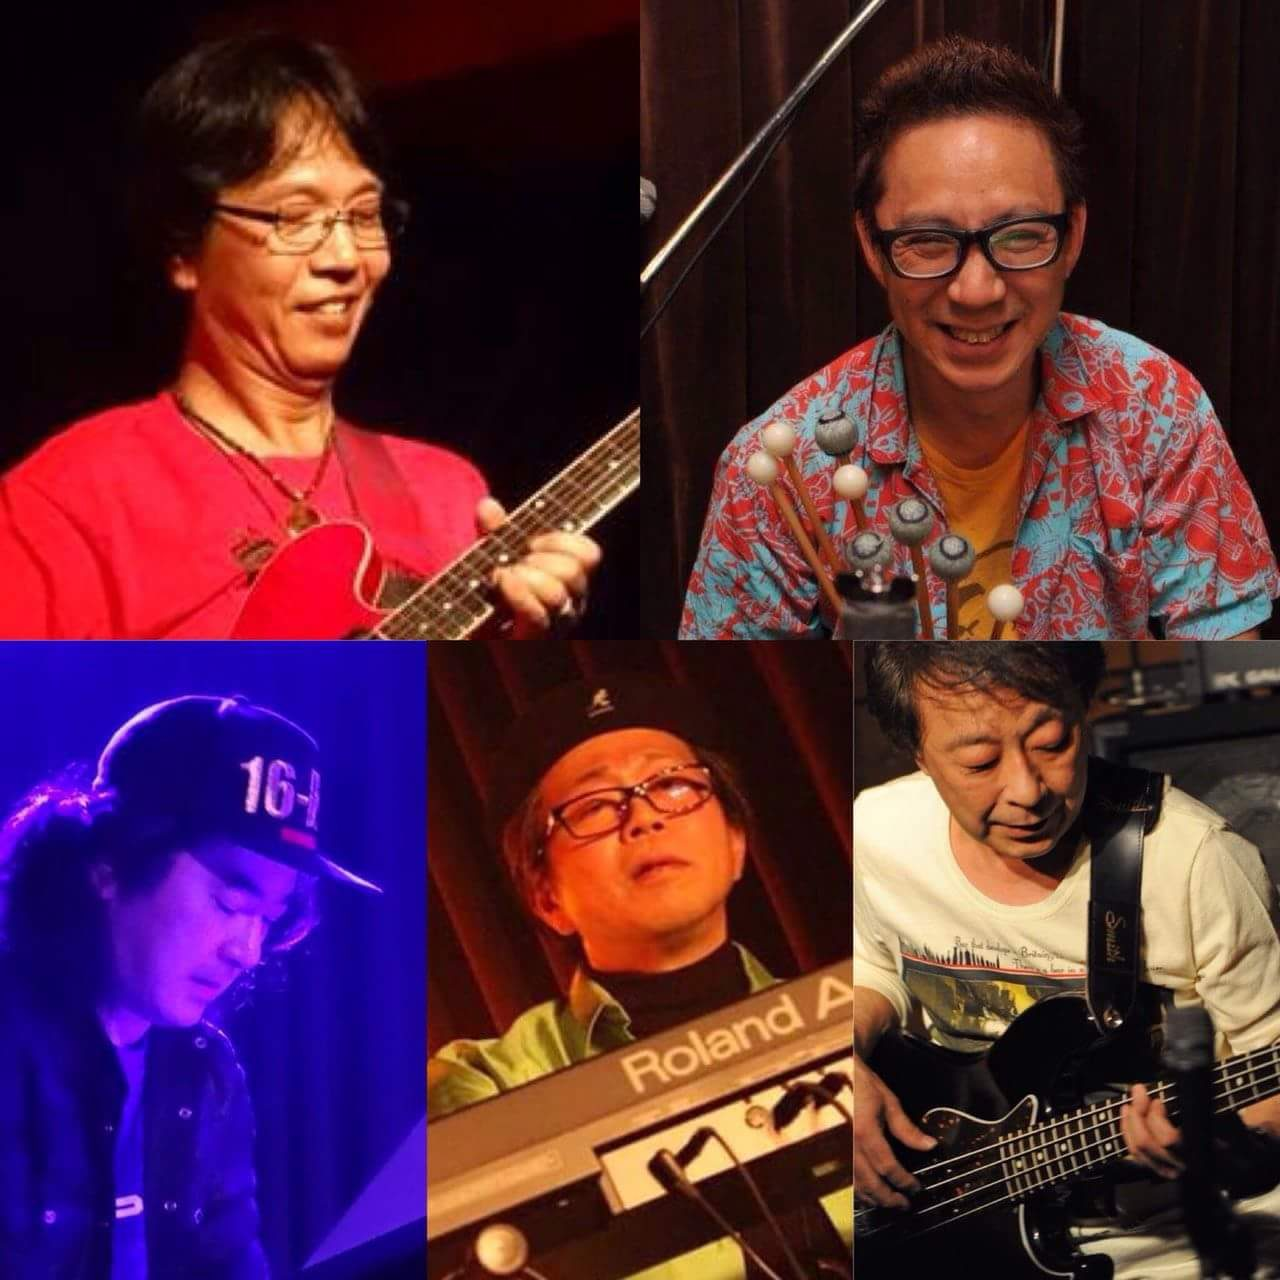 HEARTY MUSIC CLUB BAND (ほぼ矩形波倶楽部) 『HEARTY MUSIC LIVE!〜TABIDACHI〜 追加公演』